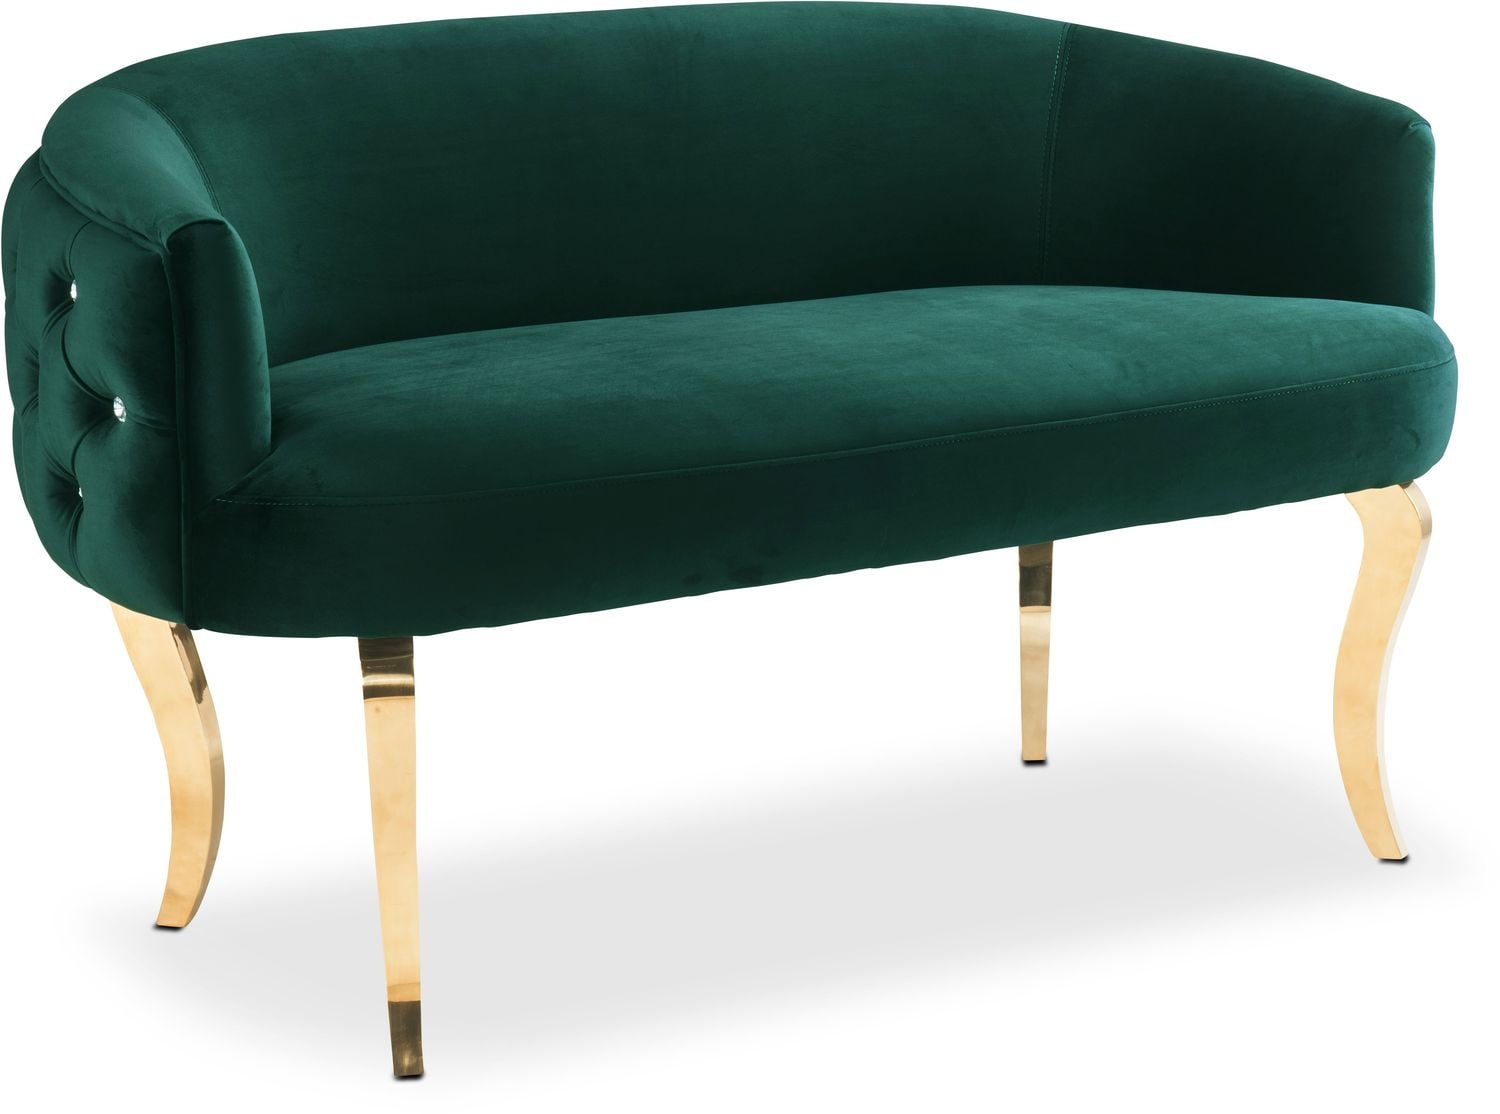 Gisele Bench - Green